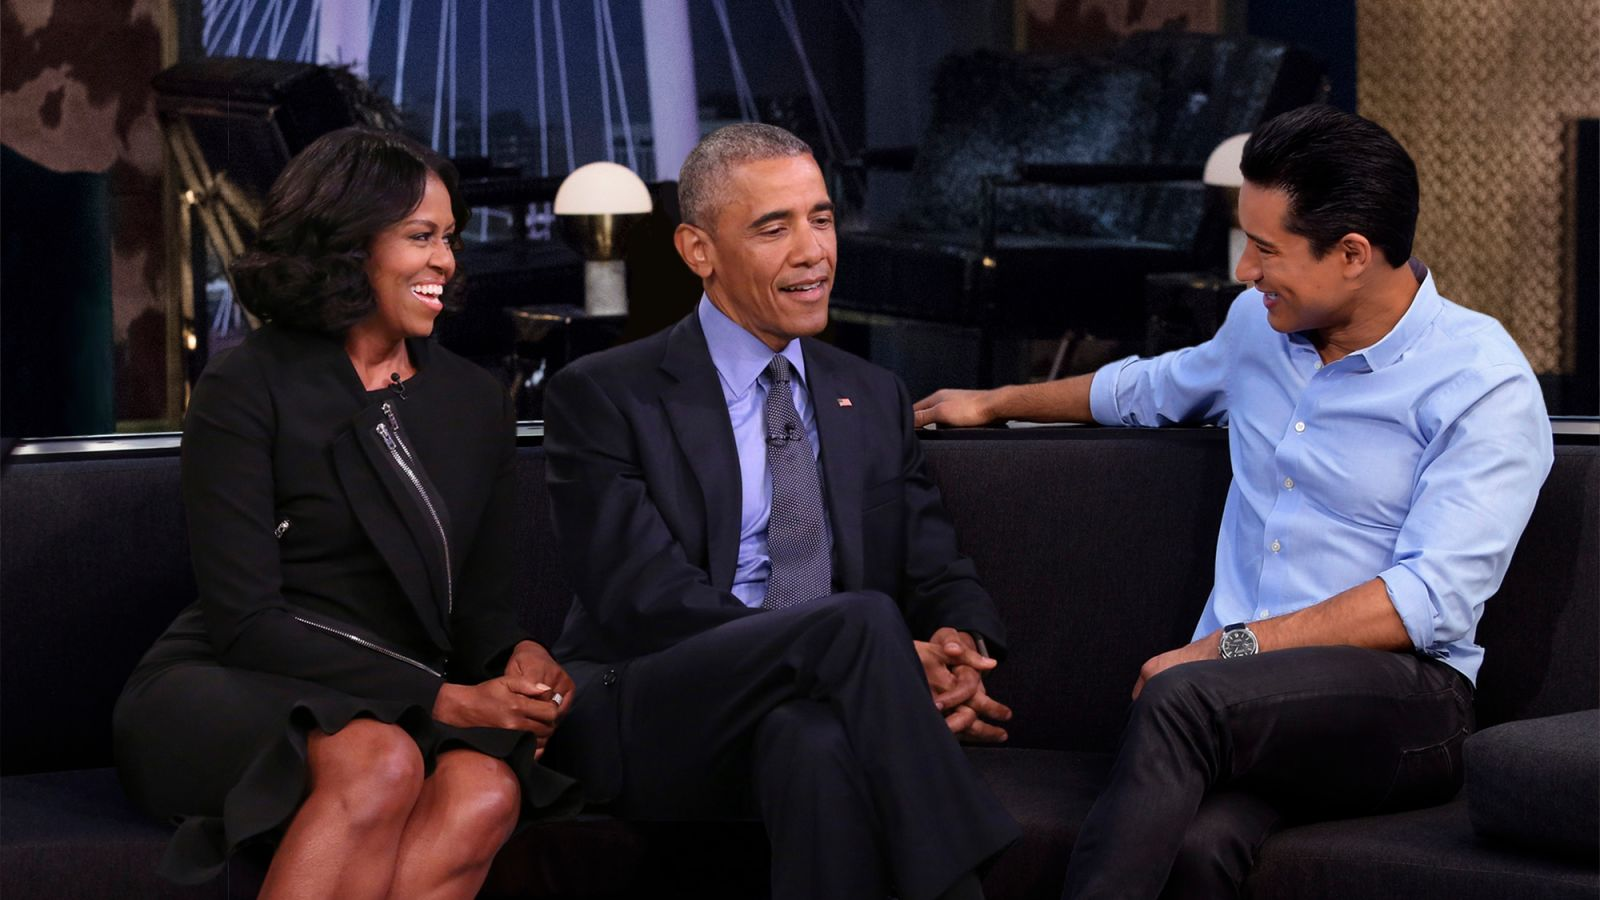 Obamas Reunited Live On TV For First Time Since Leaving White House https://t.co/5n7JI9V55u https://t.co/cCUTuyfTwl